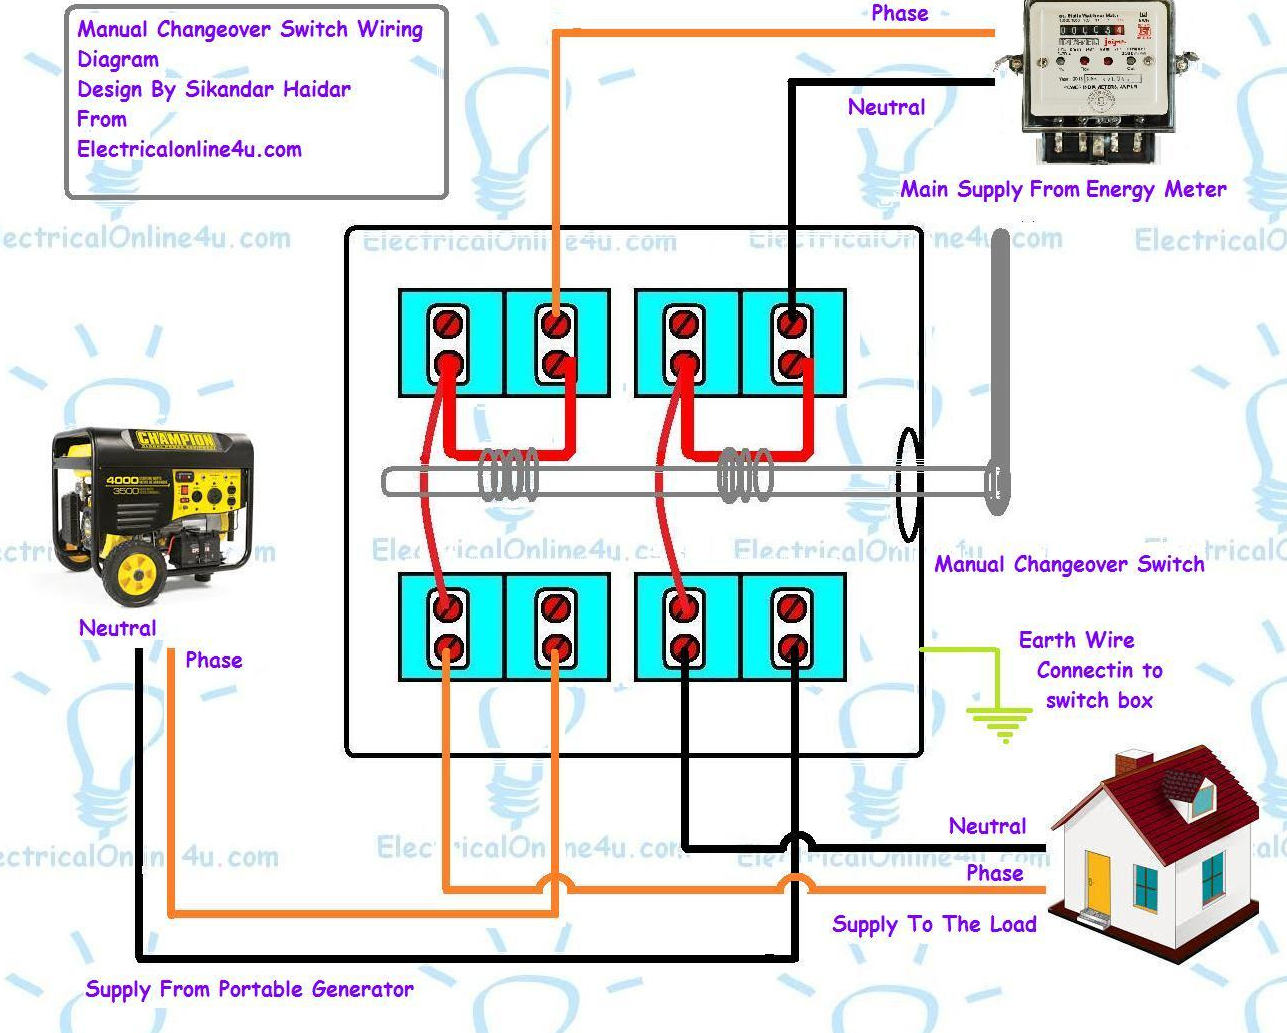 Manual Changeover Switch Wiring Diagram For Portable Generator Outlet Split Circuit Also 120 240v Single Phase